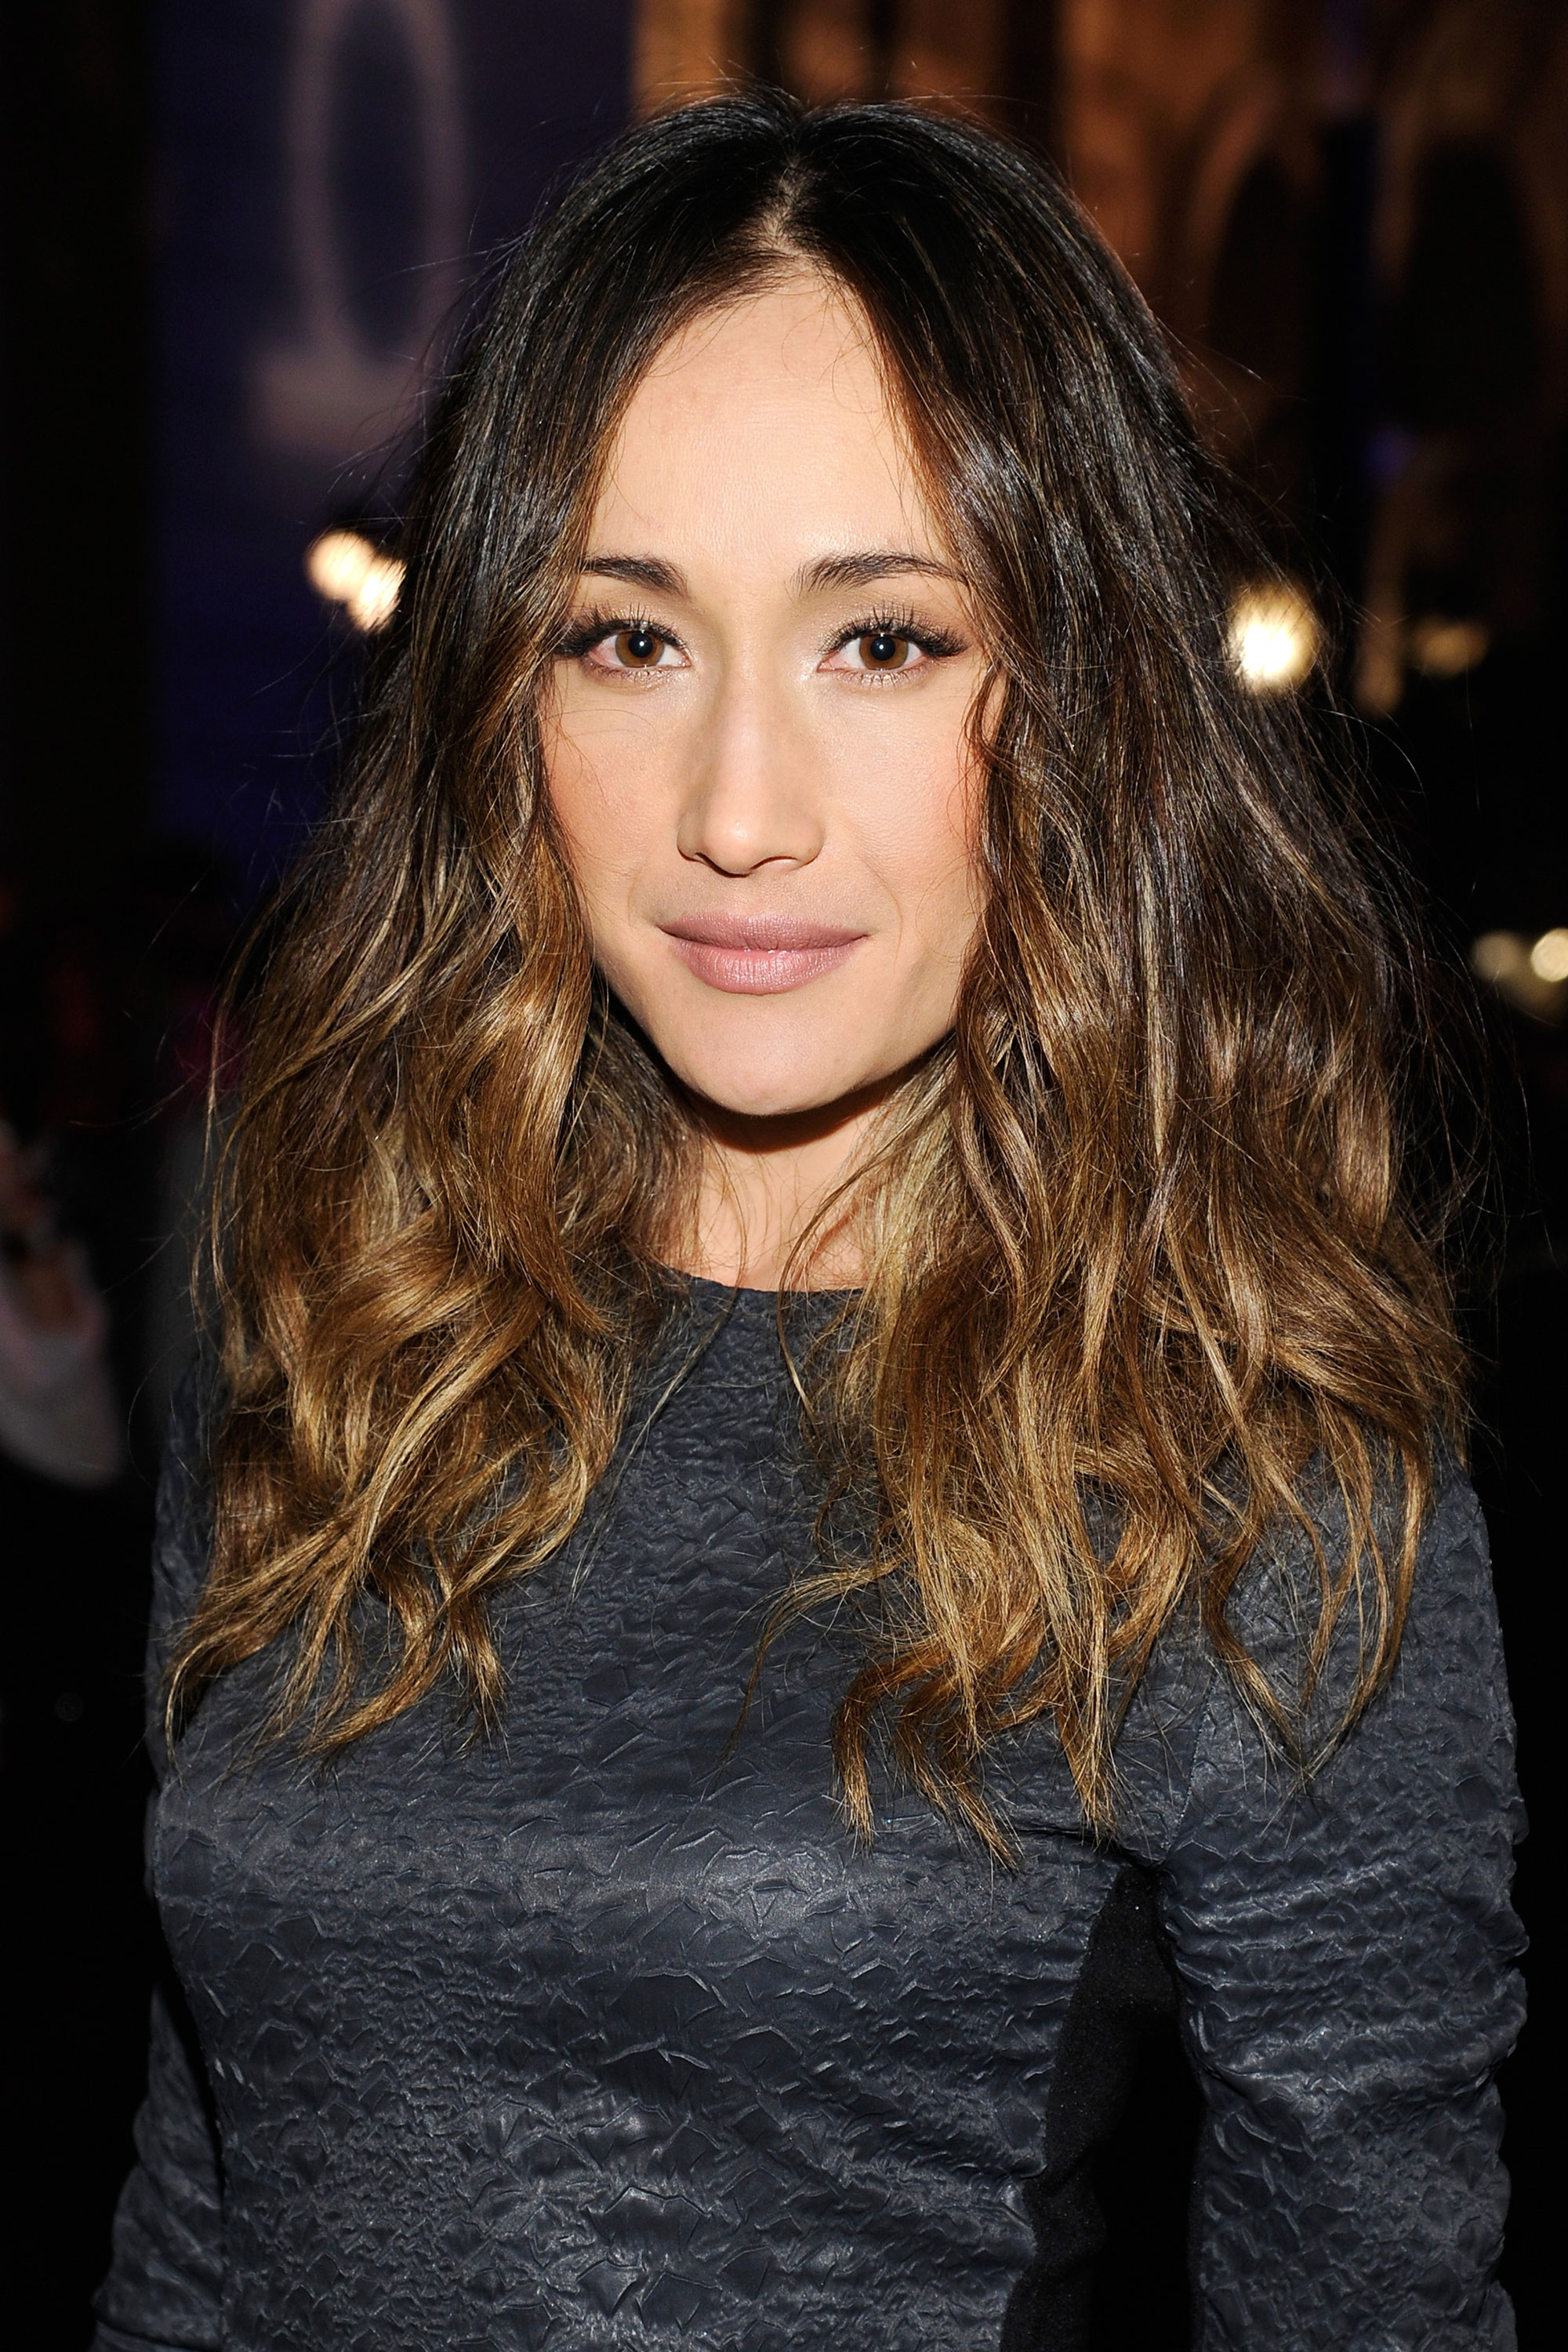 Astounding 33 Best Medium Hairstyles Celebrities With Shoulder Length Haircuts Hairstyles For Women Draintrainus